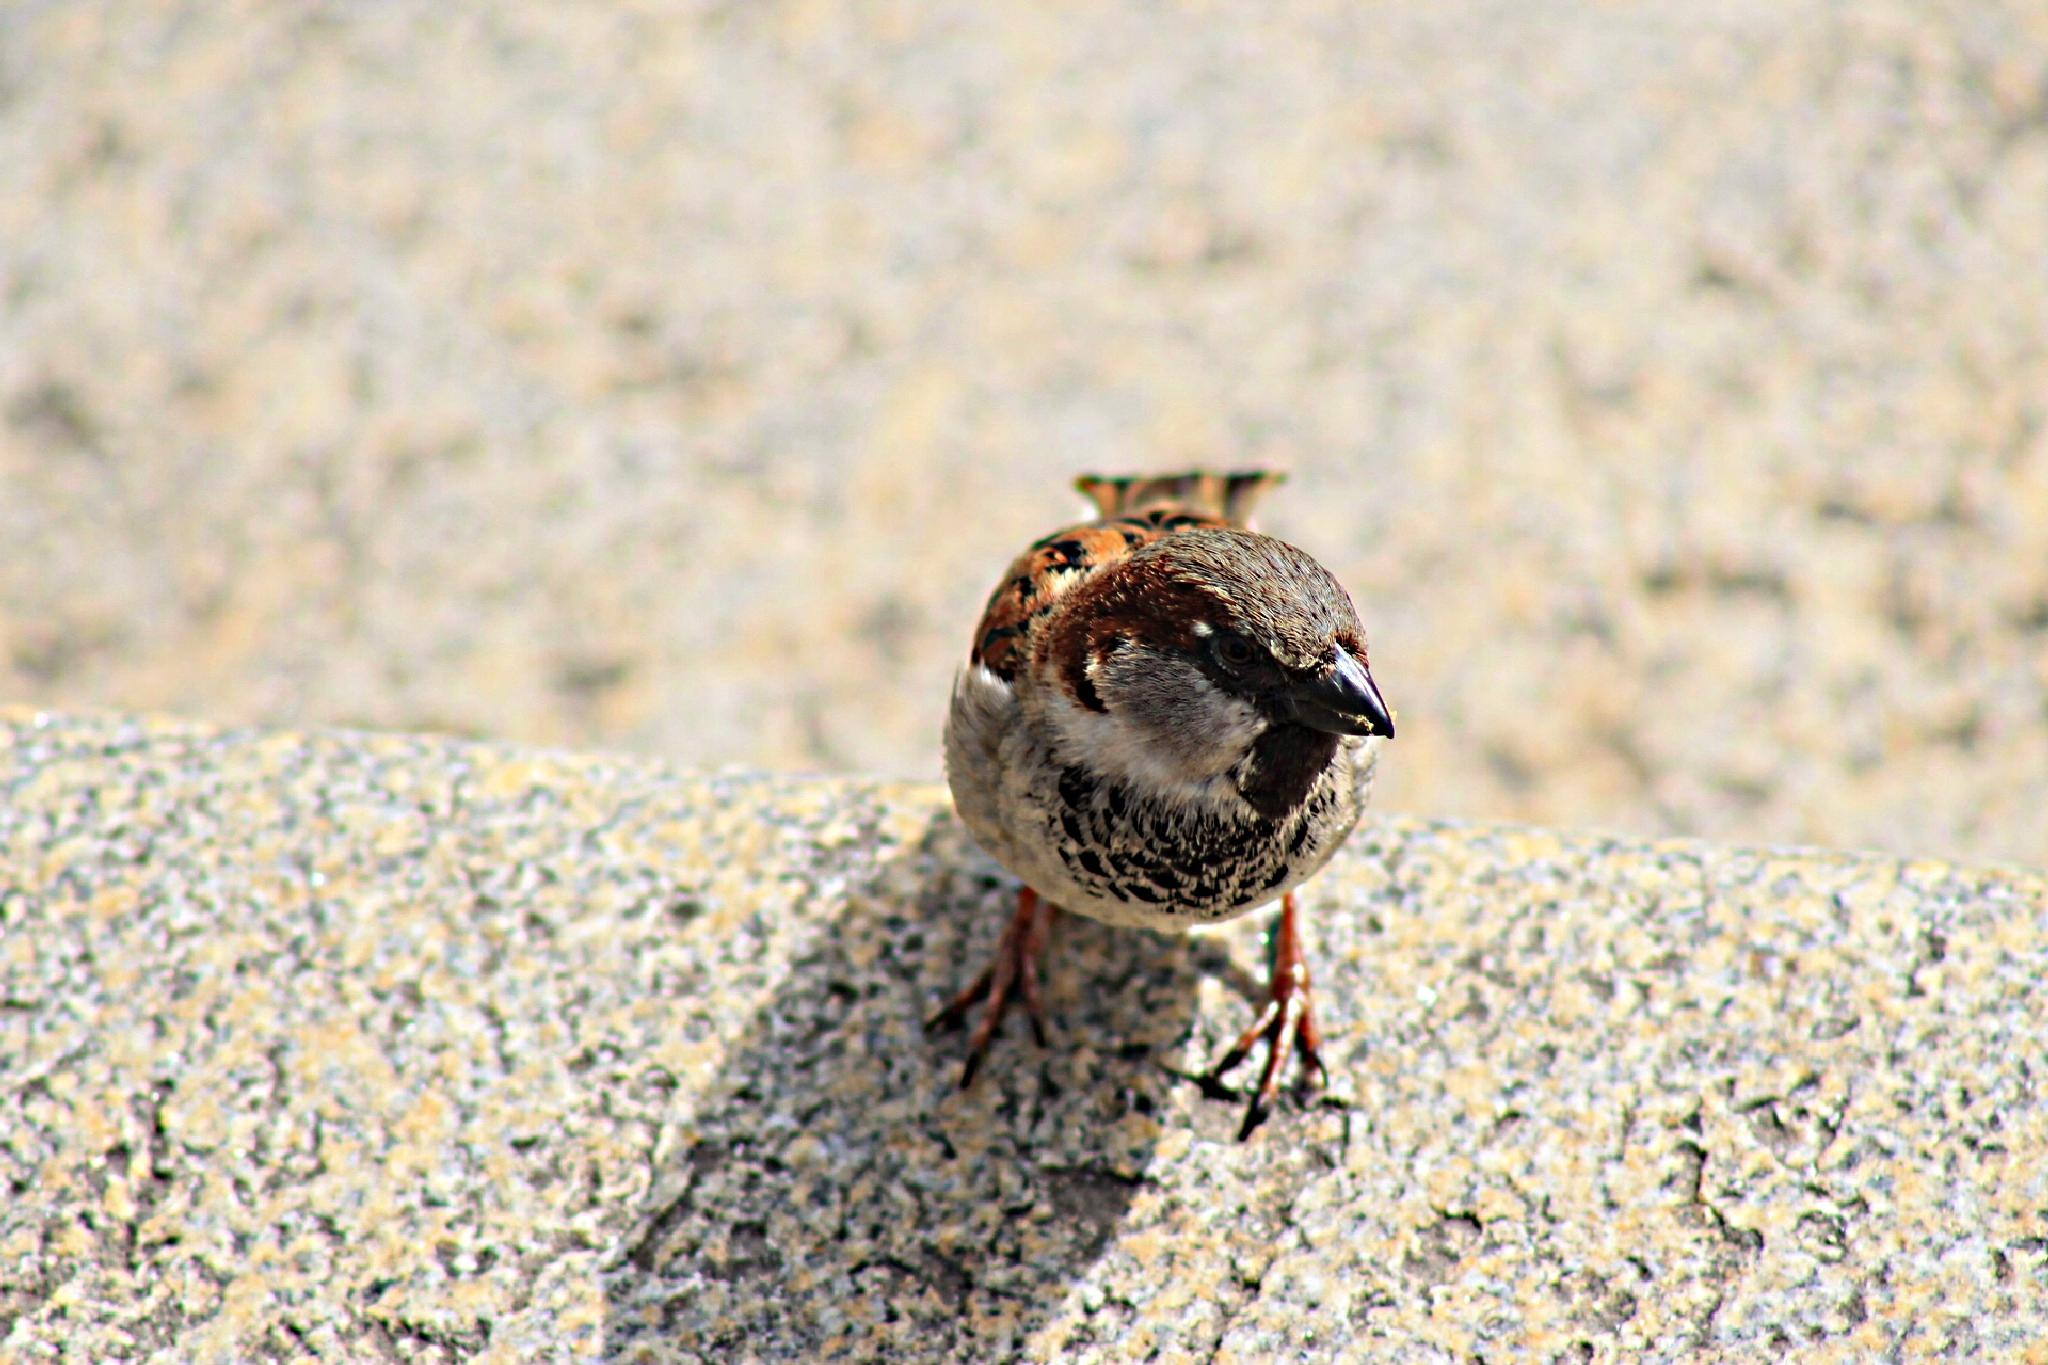 House Sparrow (Passer domesticus) is a species of small passerine family Passeridae by Andre RAMSEYER